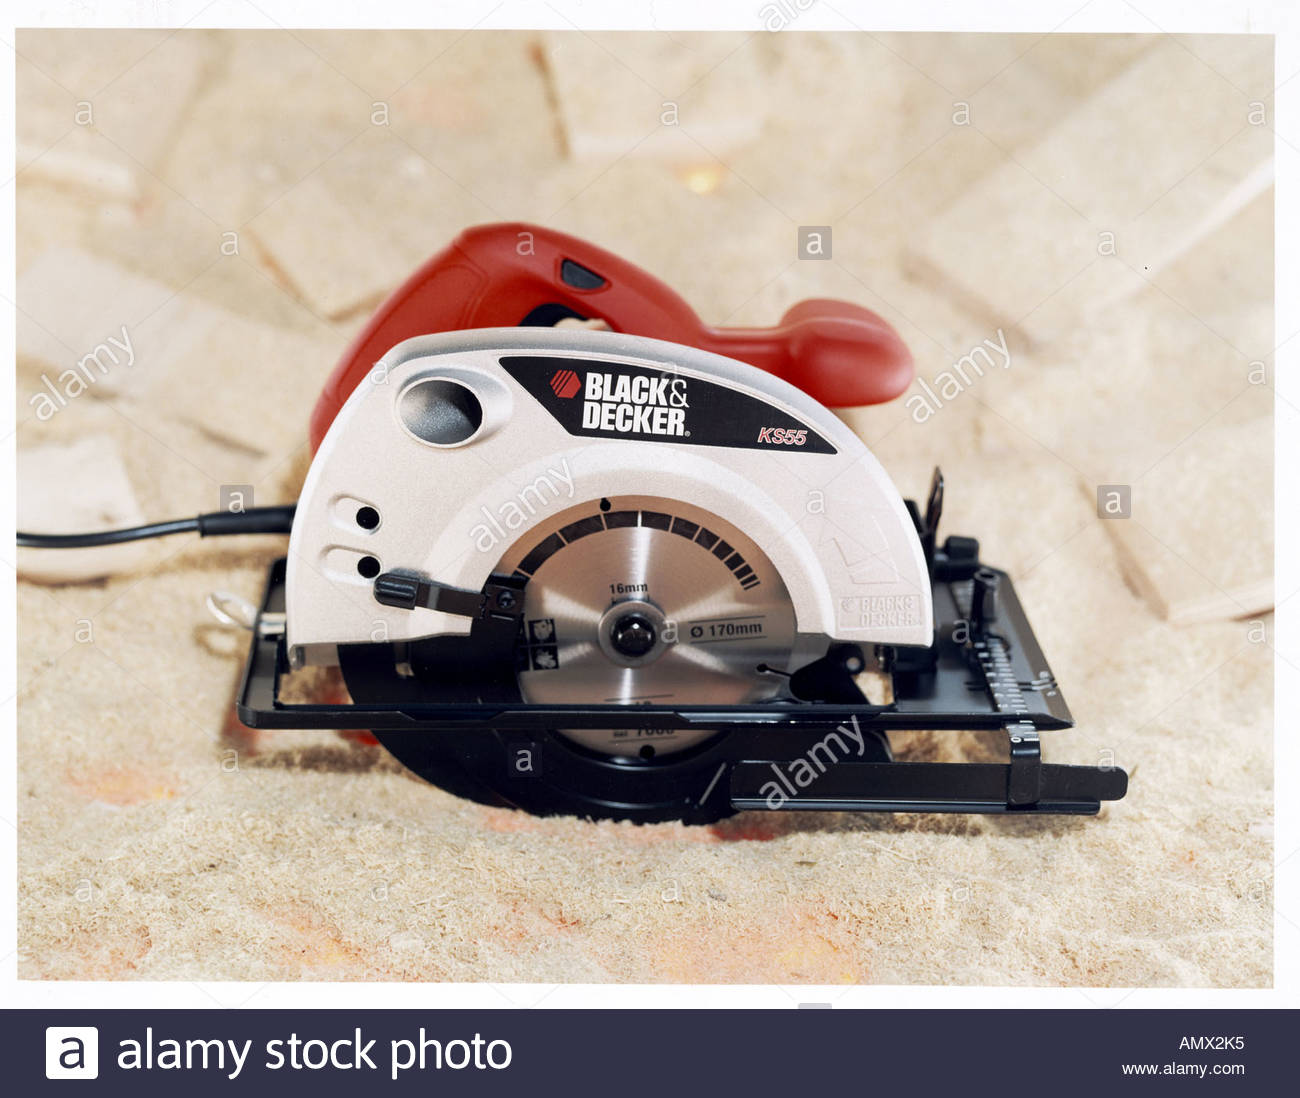 Black and decker stock photos black and decker stock images alamy black decker circular saw stock image greentooth Choice Image